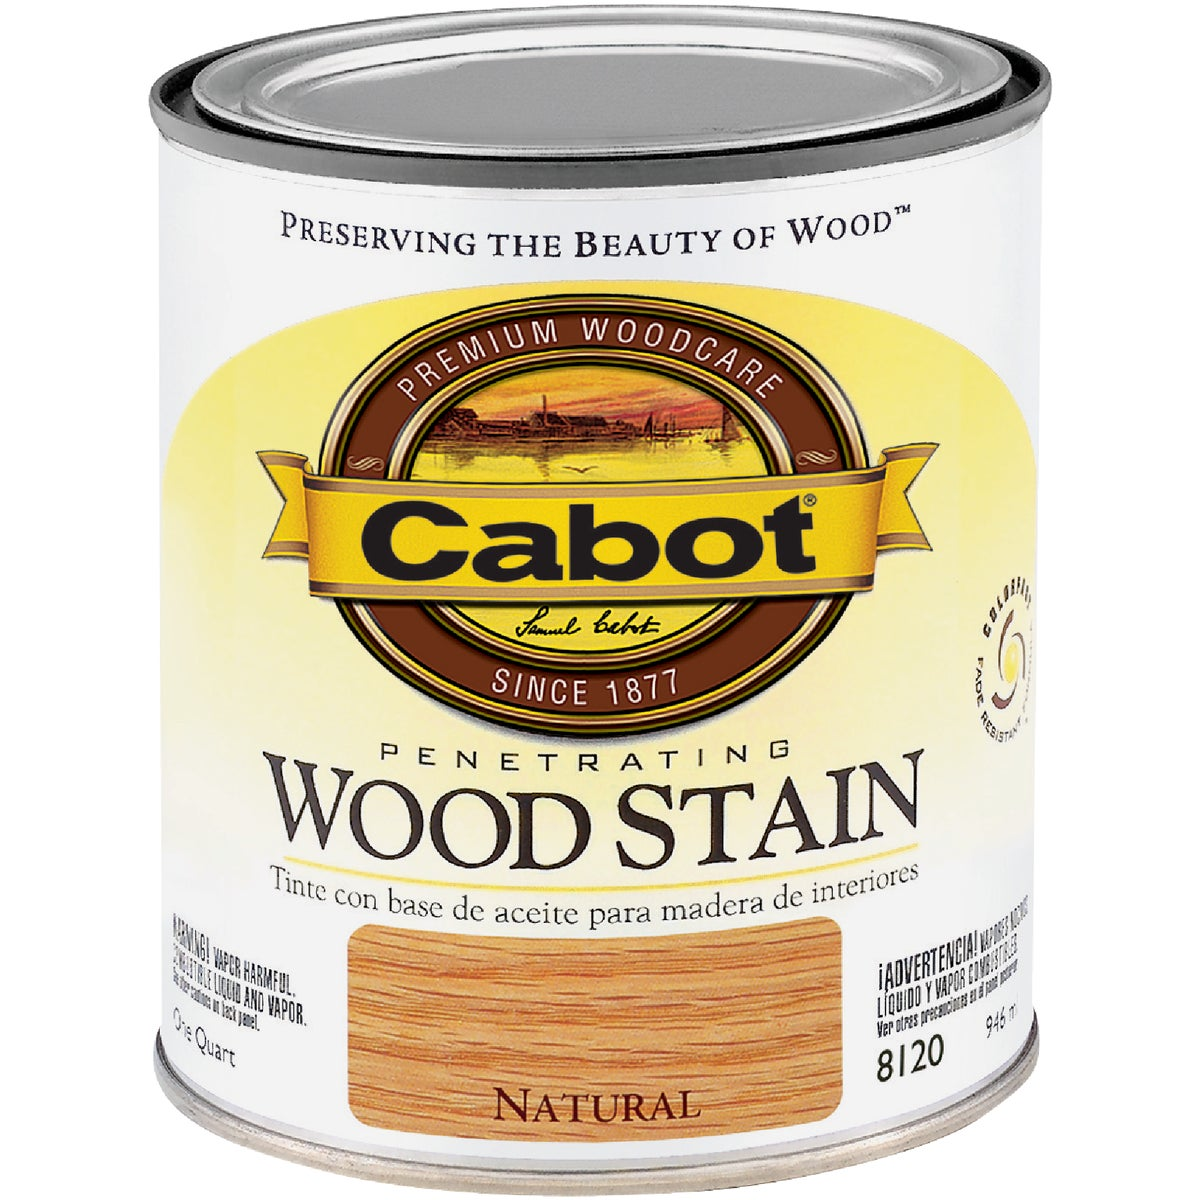 INT NATURAL WOOD STAIN - 144.0008120.005 by Valspar Corp